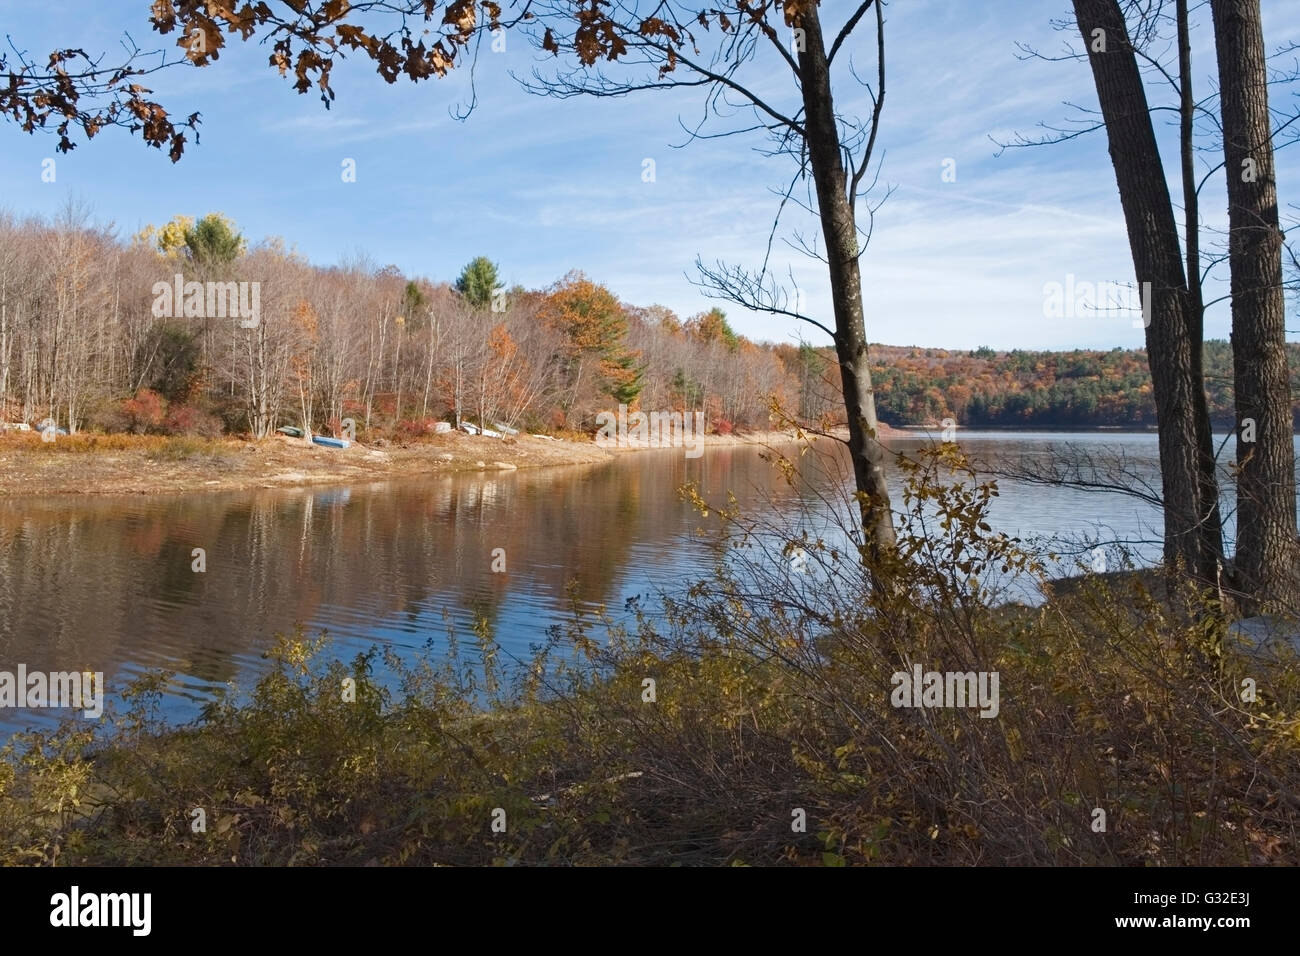 A Natural Area In New York State Landscape High Resolution Stock Photography And Images Alamy